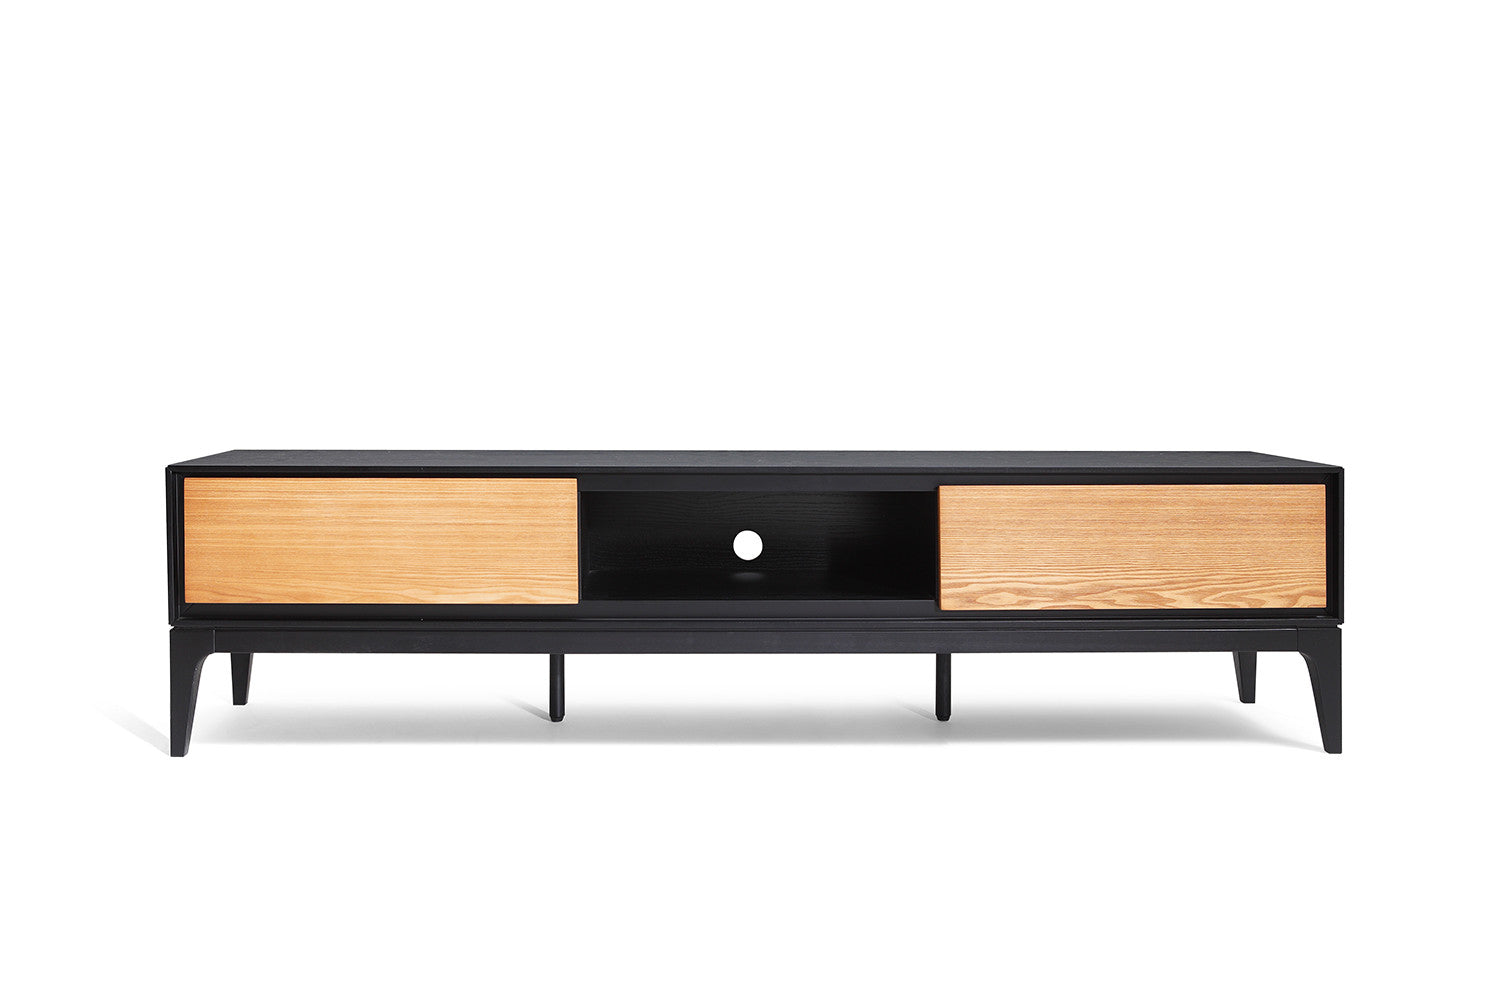 Meuble Tv Scandinave Design : Meuble Tv Design Scandinave Meuble-tv-design-bois-noir